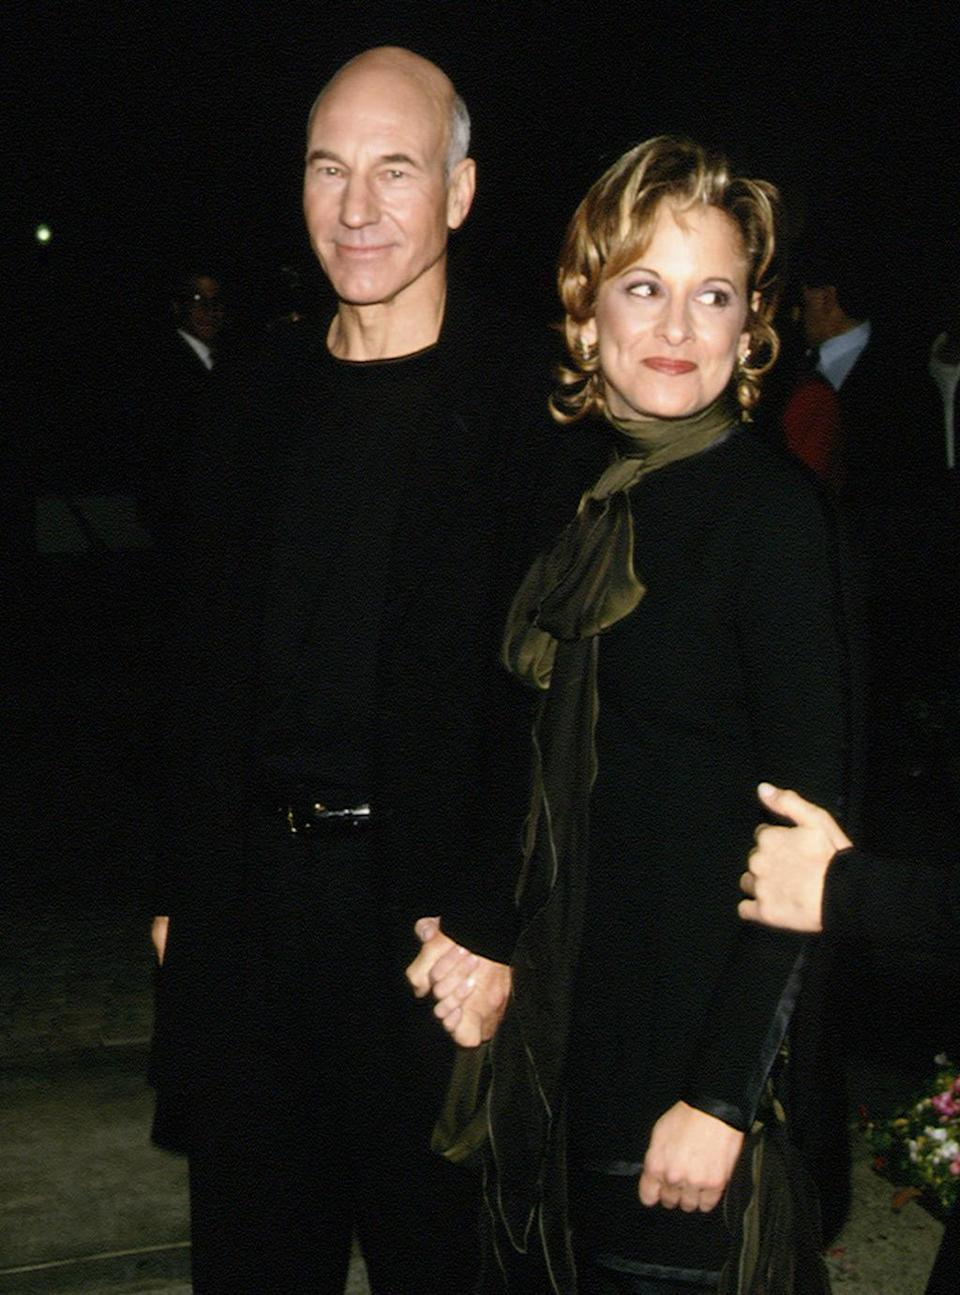 <p>Patrick Stewart (Captain Jean-Luc Picard) and wife Wendy Nuess attend the Los Angeles premiere of the first <i>Next Generation </i>movie on Nov. 17, 1994. Nuess was a <i>Star Trek</i> TV producer. <i>(Photo: Frank Trapper/Getty Images)</i></p>